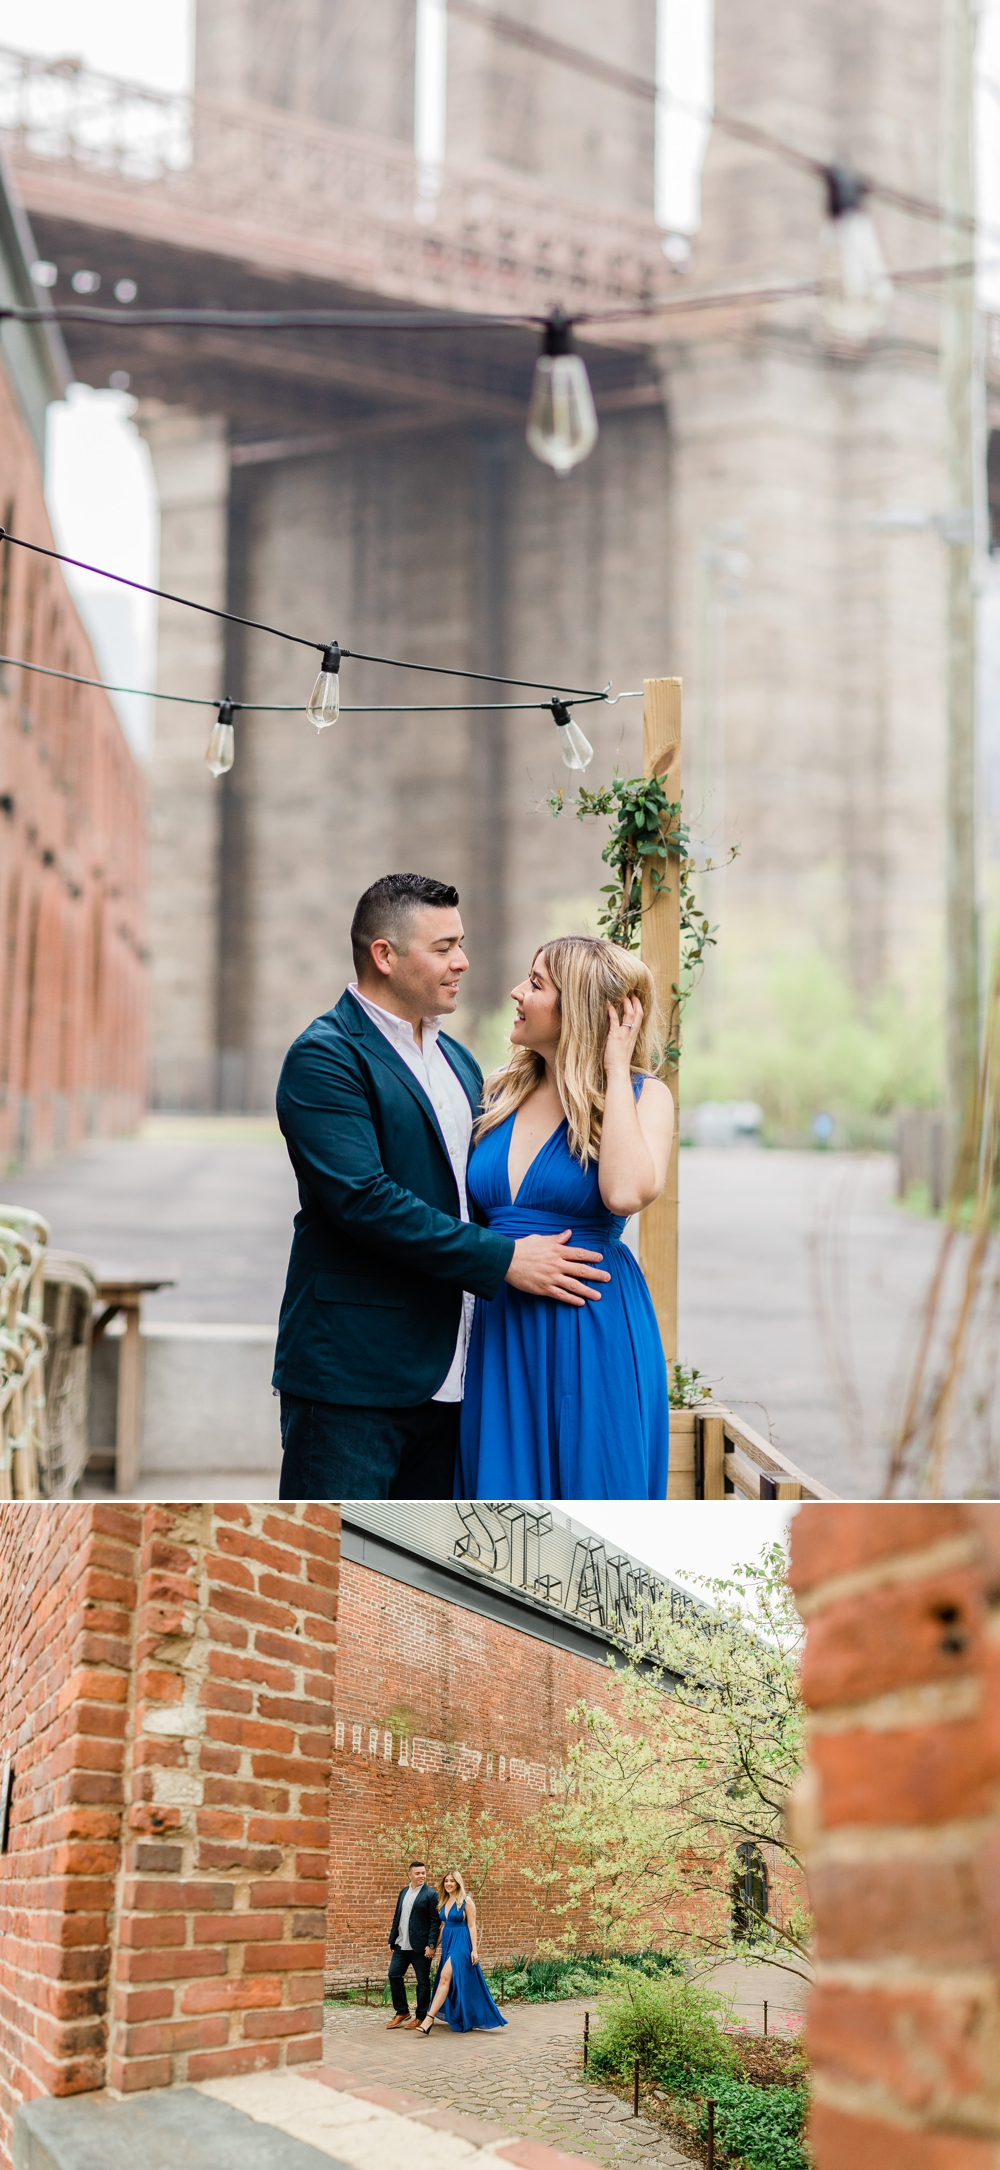 empire stores brooklyn nyc engagement session